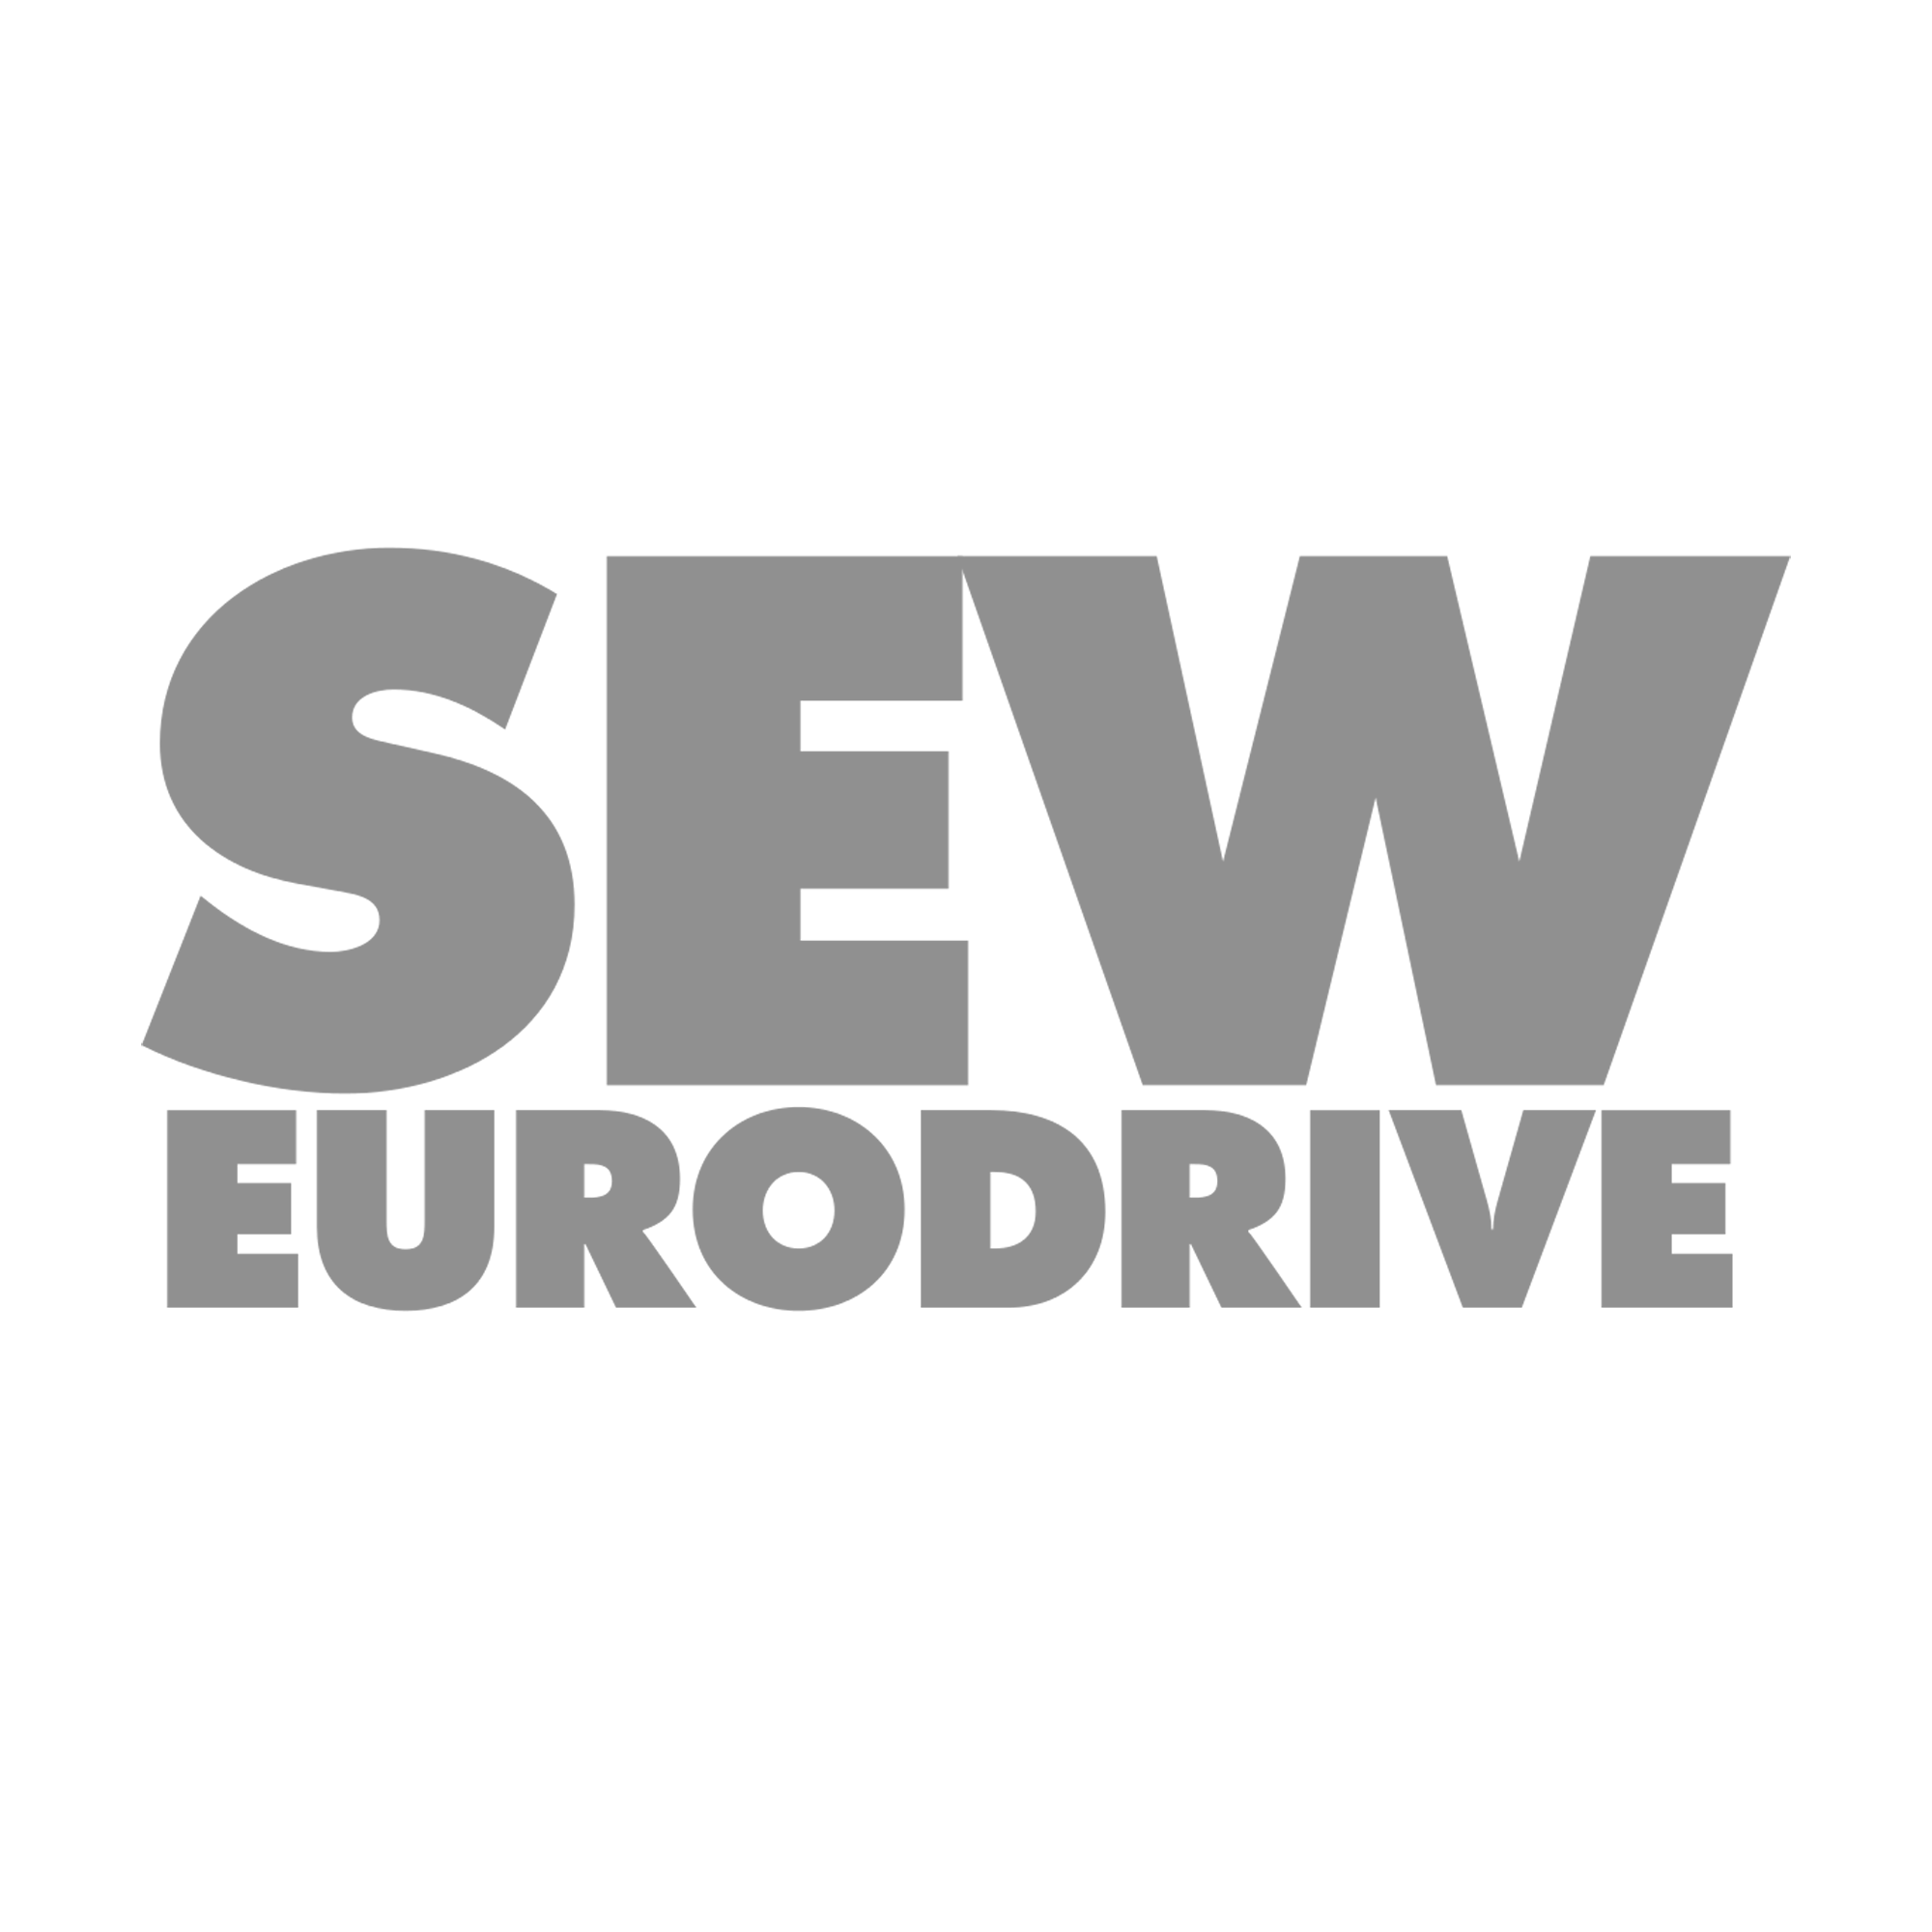 Sew eurodrive logo black and white.png